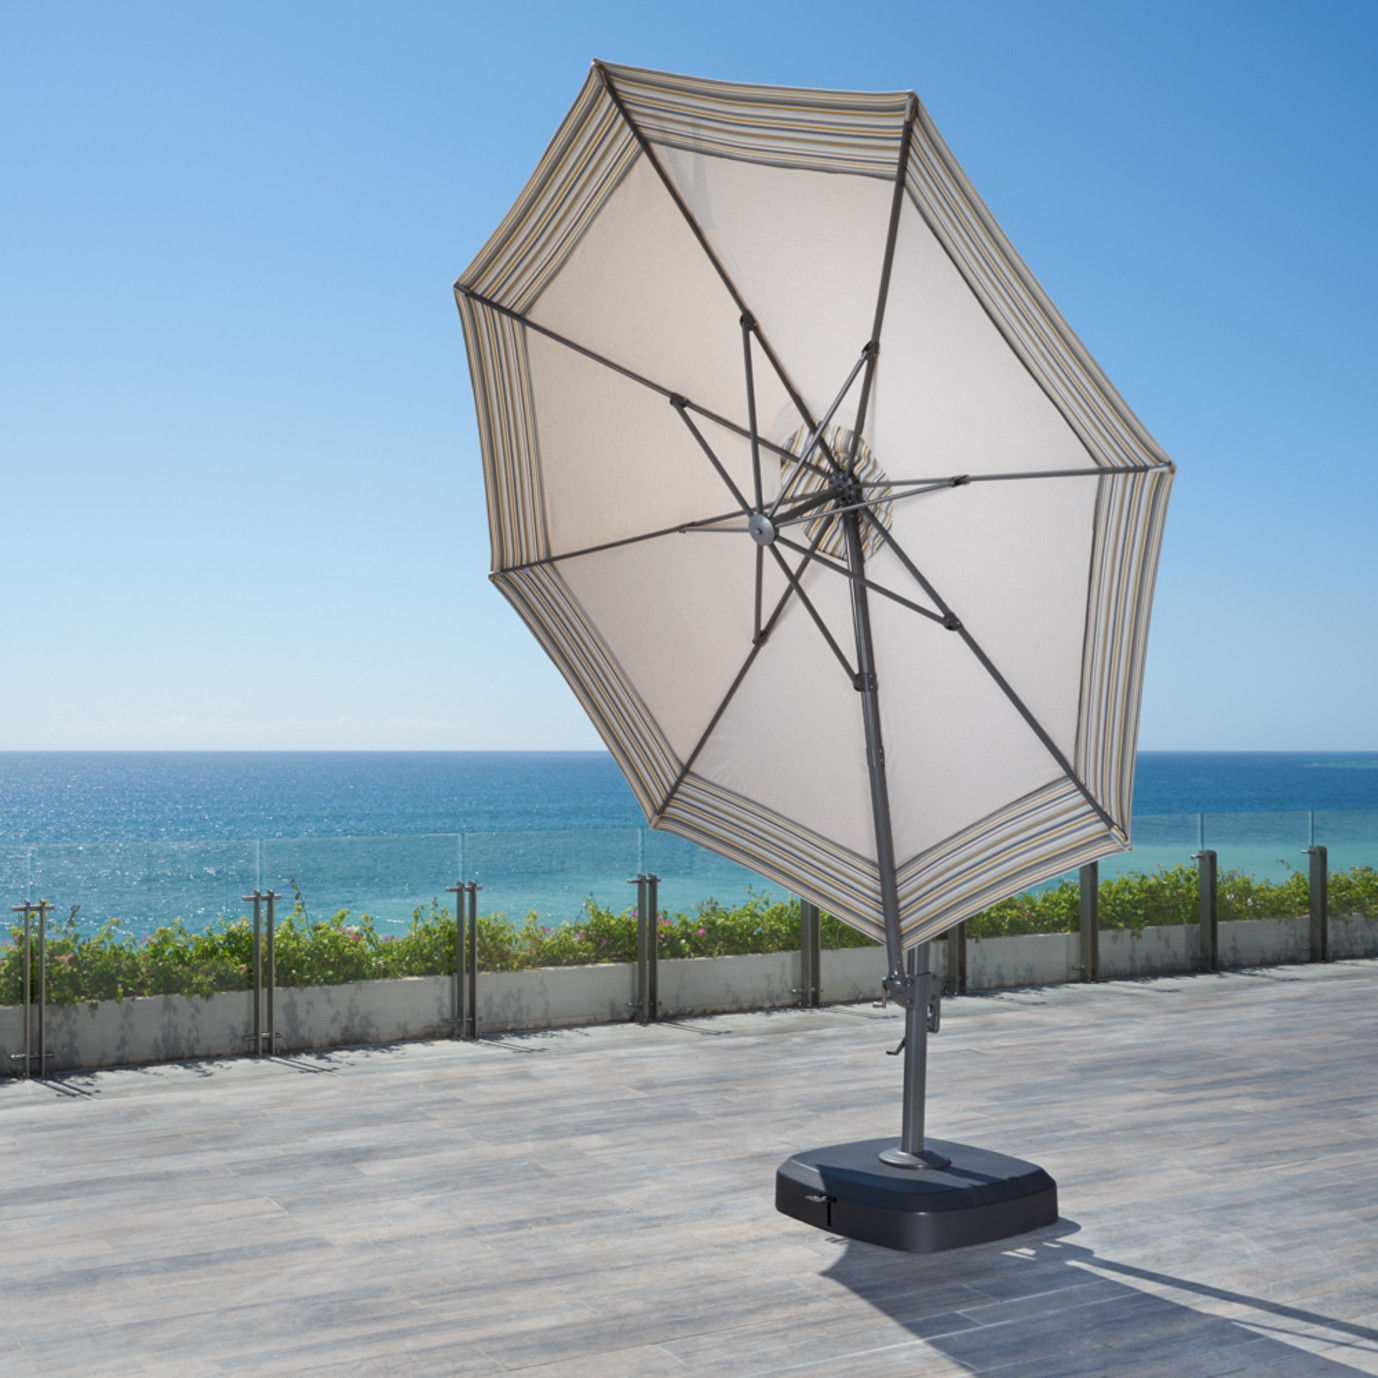 Vistano™ 11ft Round Grand Umbrella - Canvas Flax